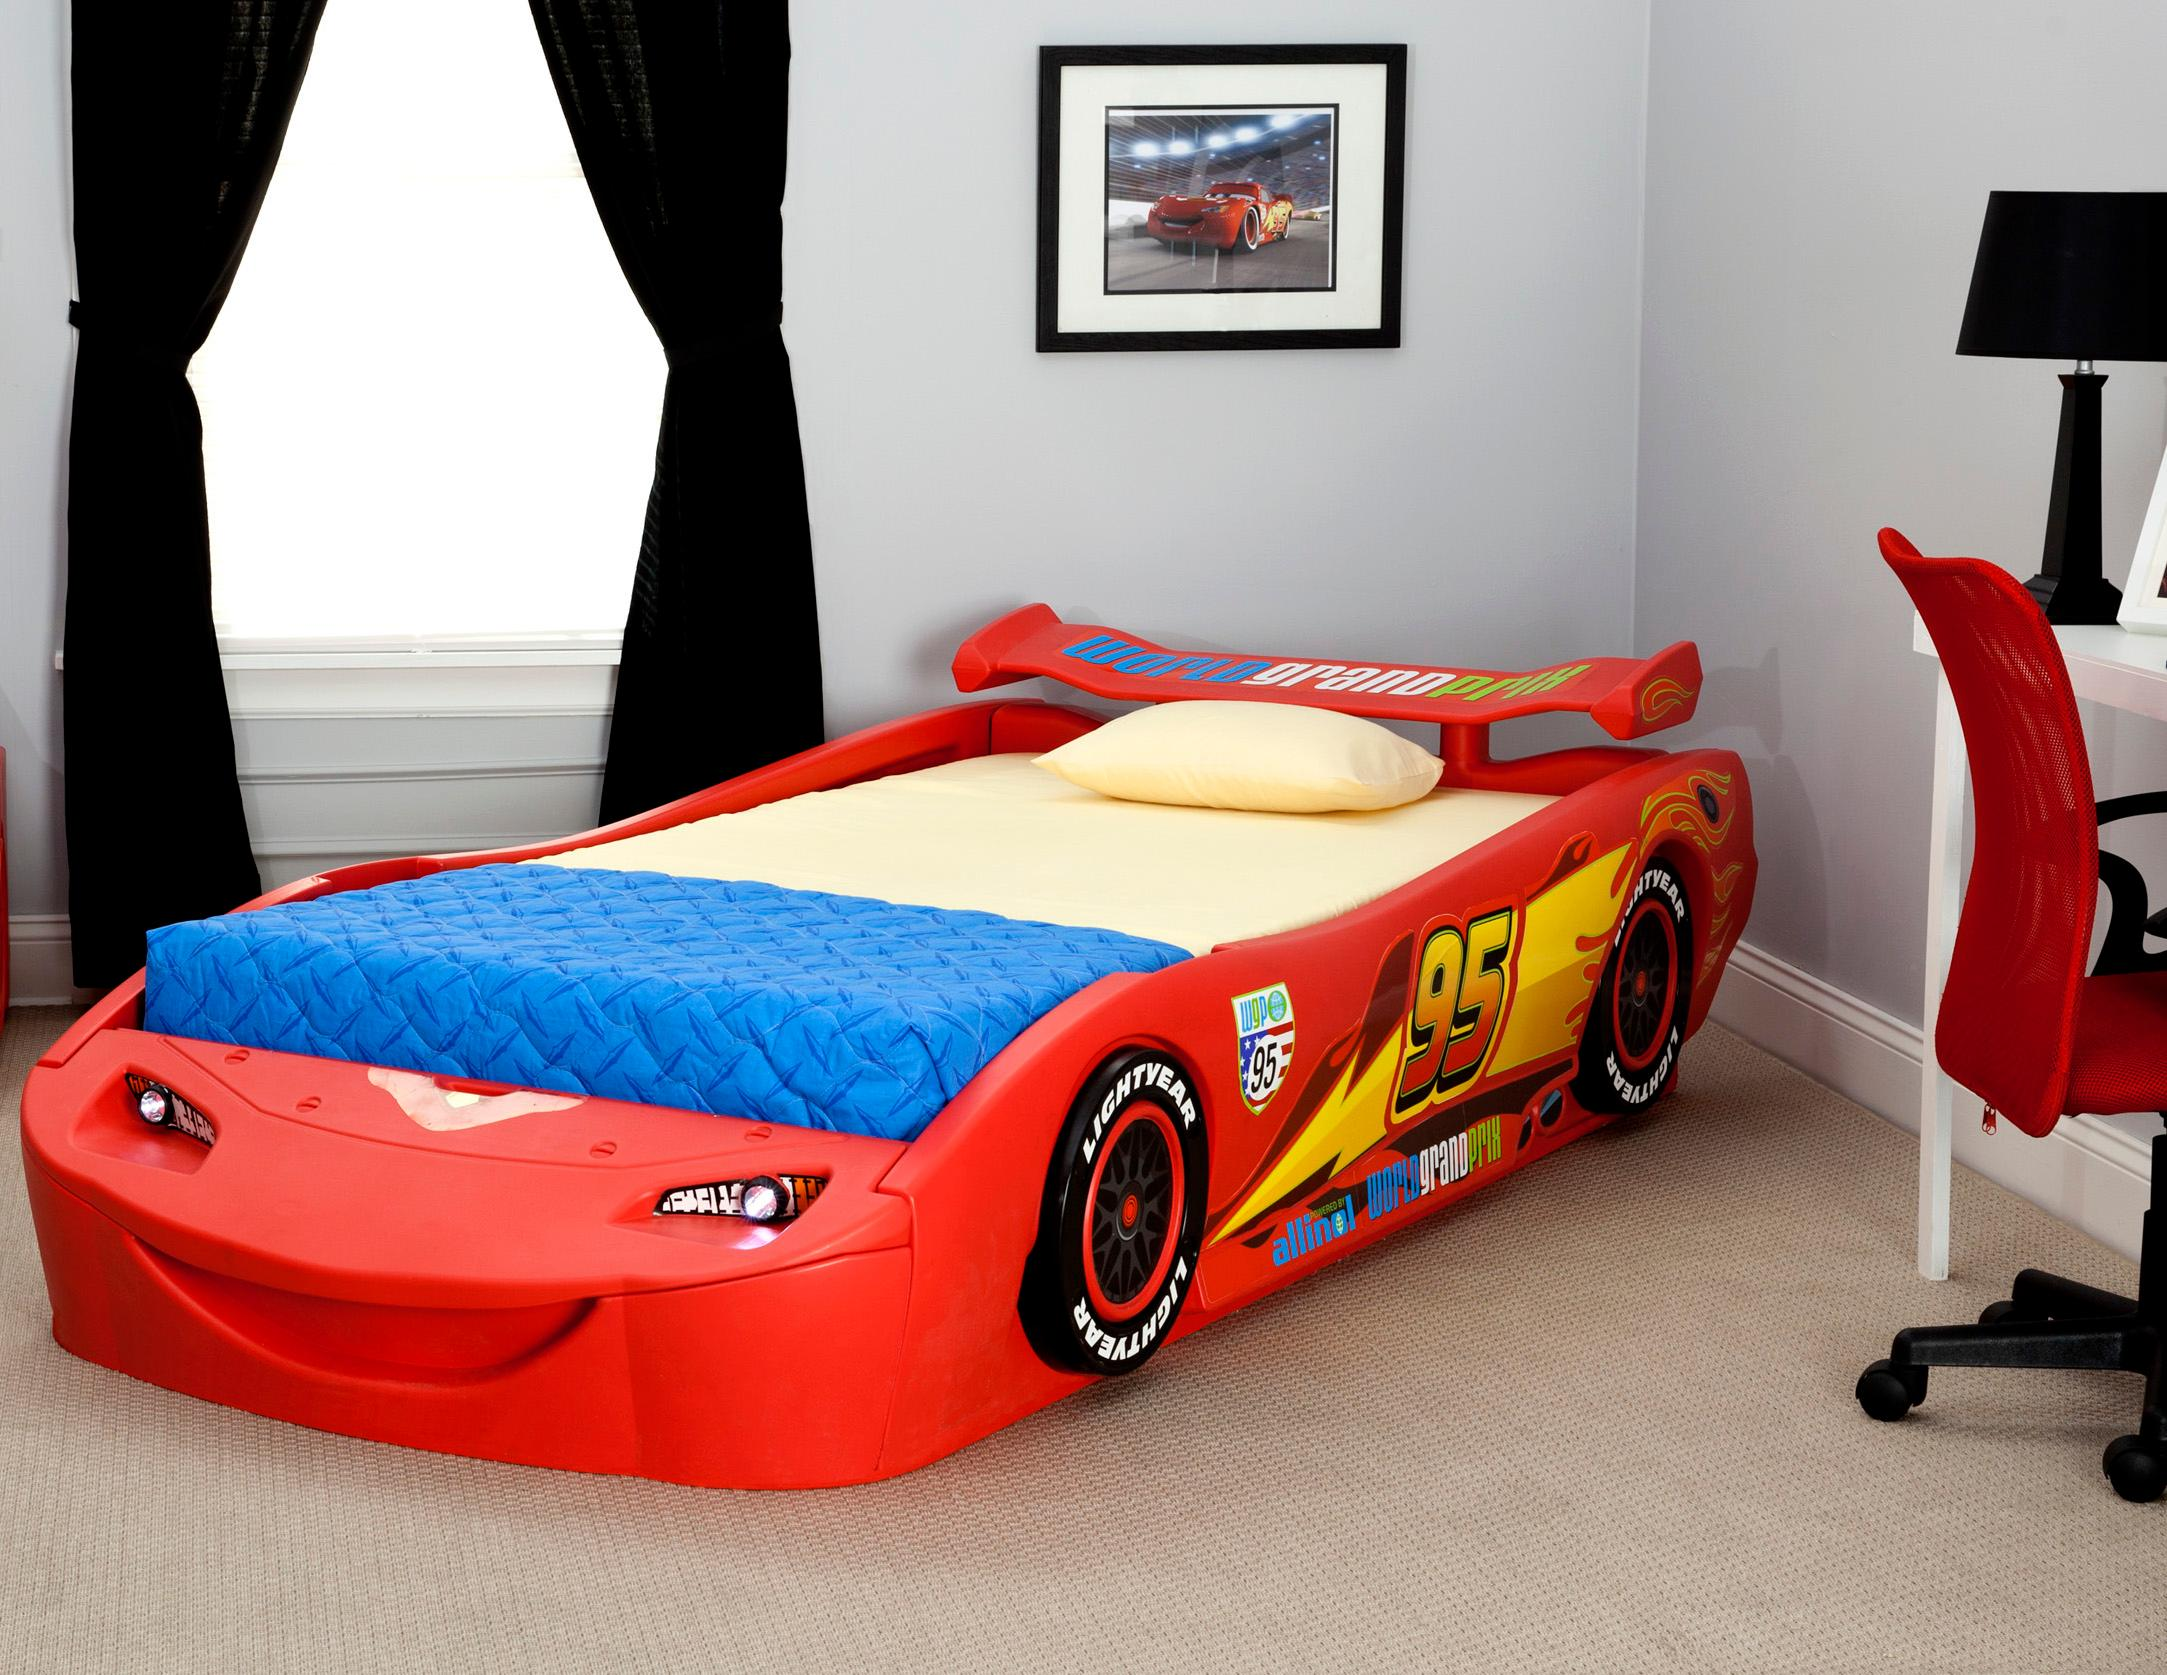 Car beds for boys twin - View Larger